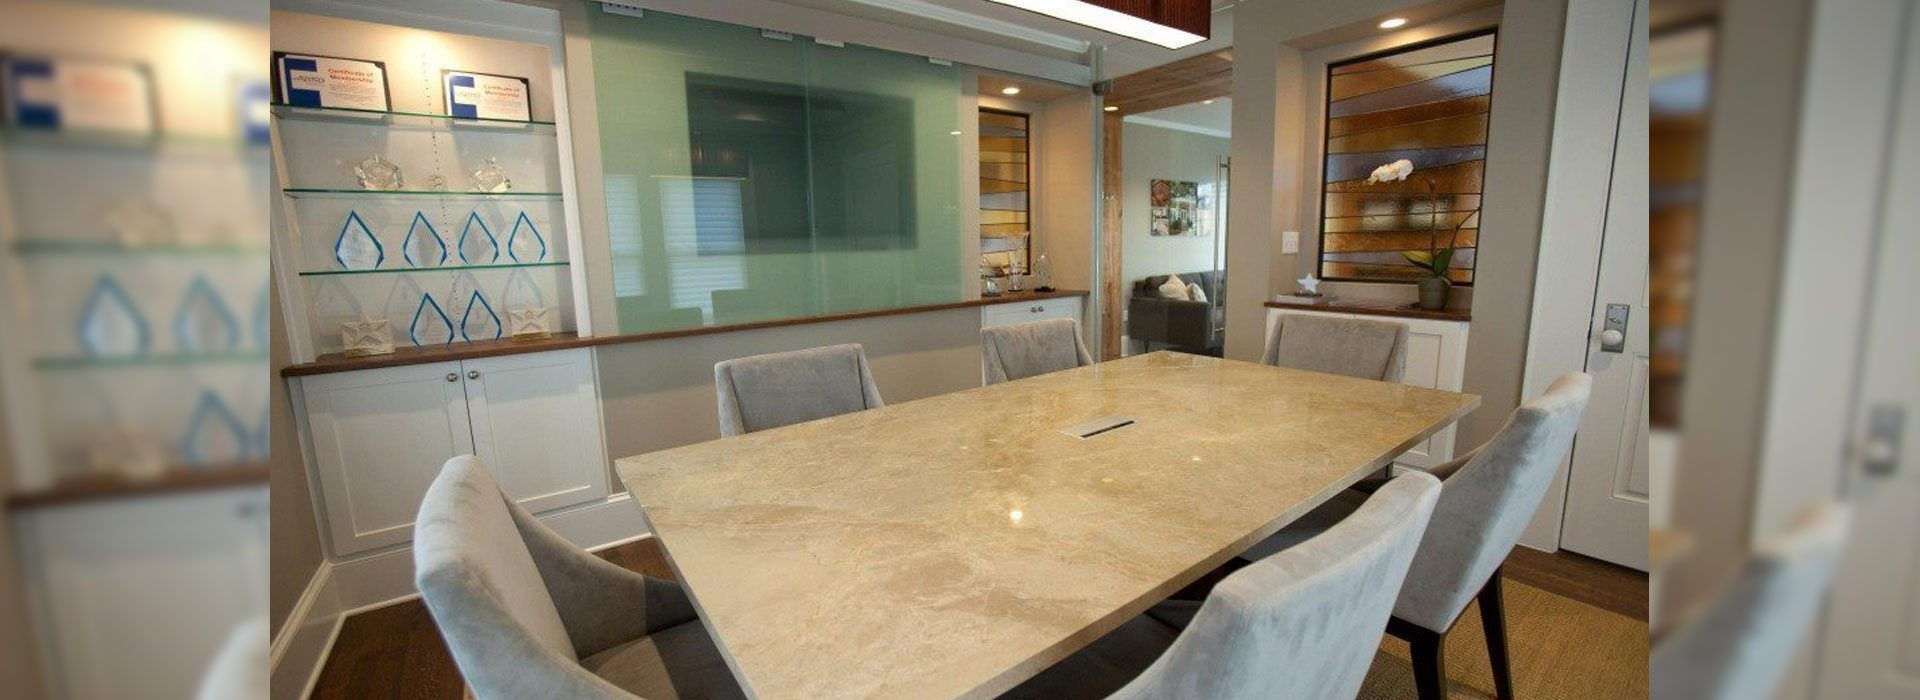 Commercial Interior Glass Products | Commercial Products | Anchor-Ventana Glass